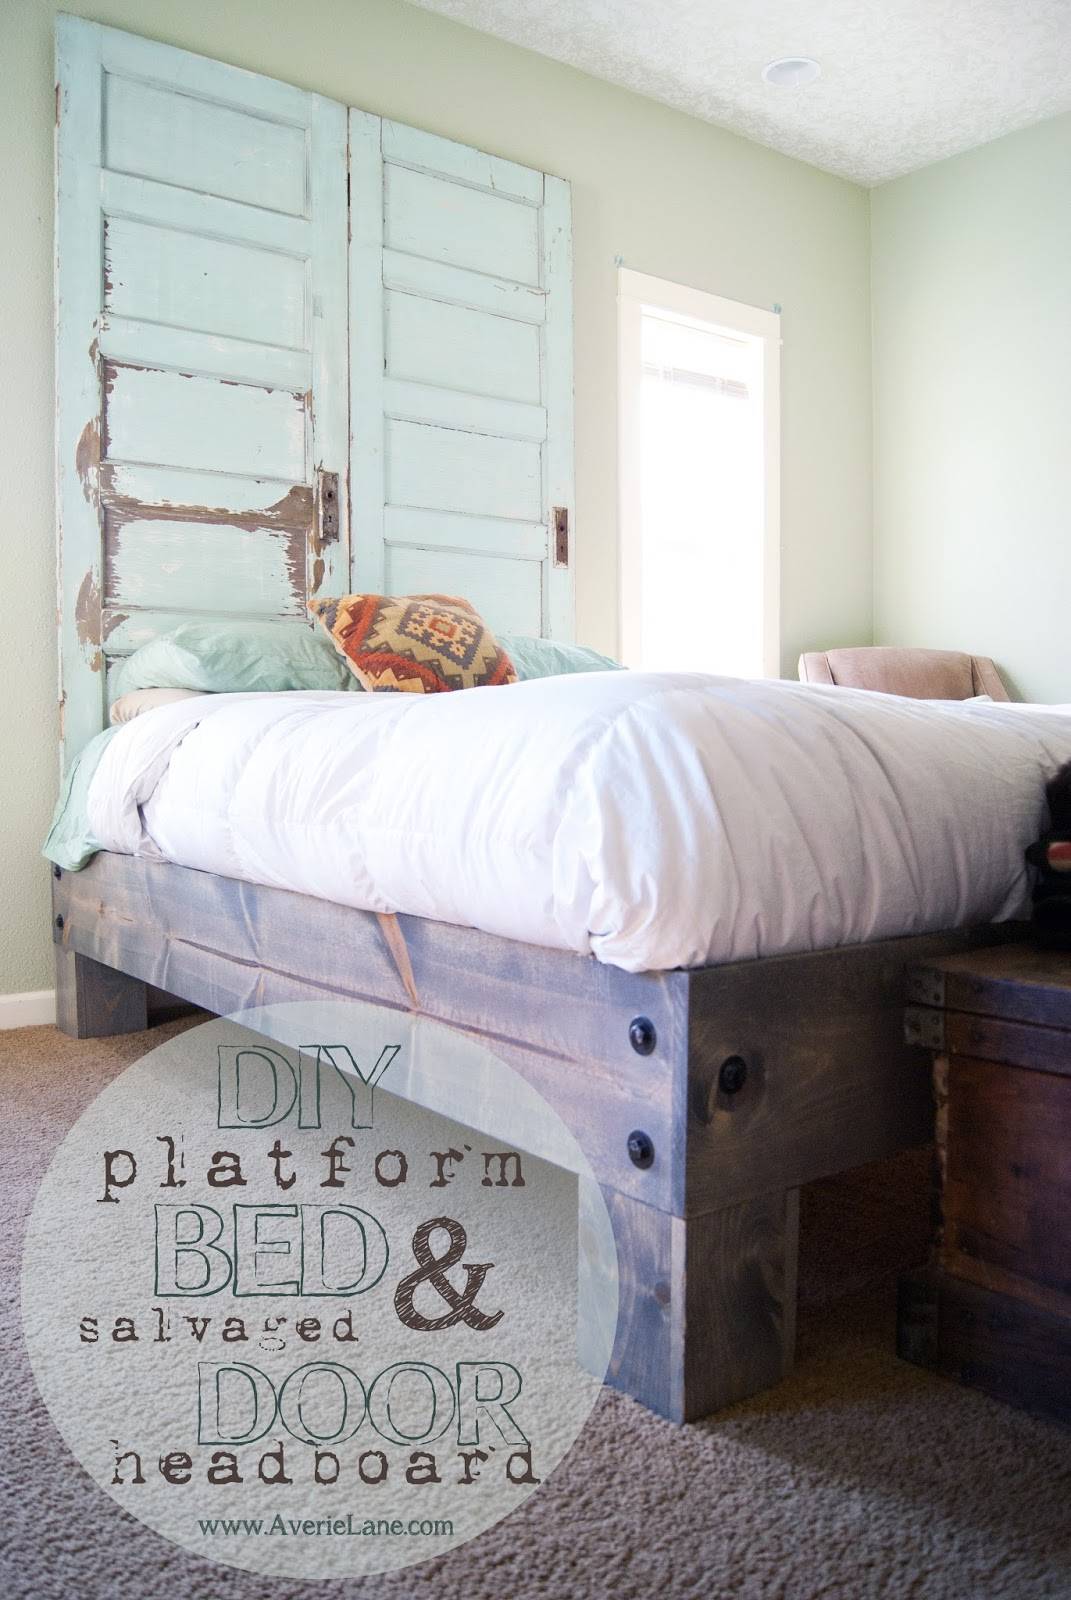 DIY Platform Bed & Salvaged Door Headboard